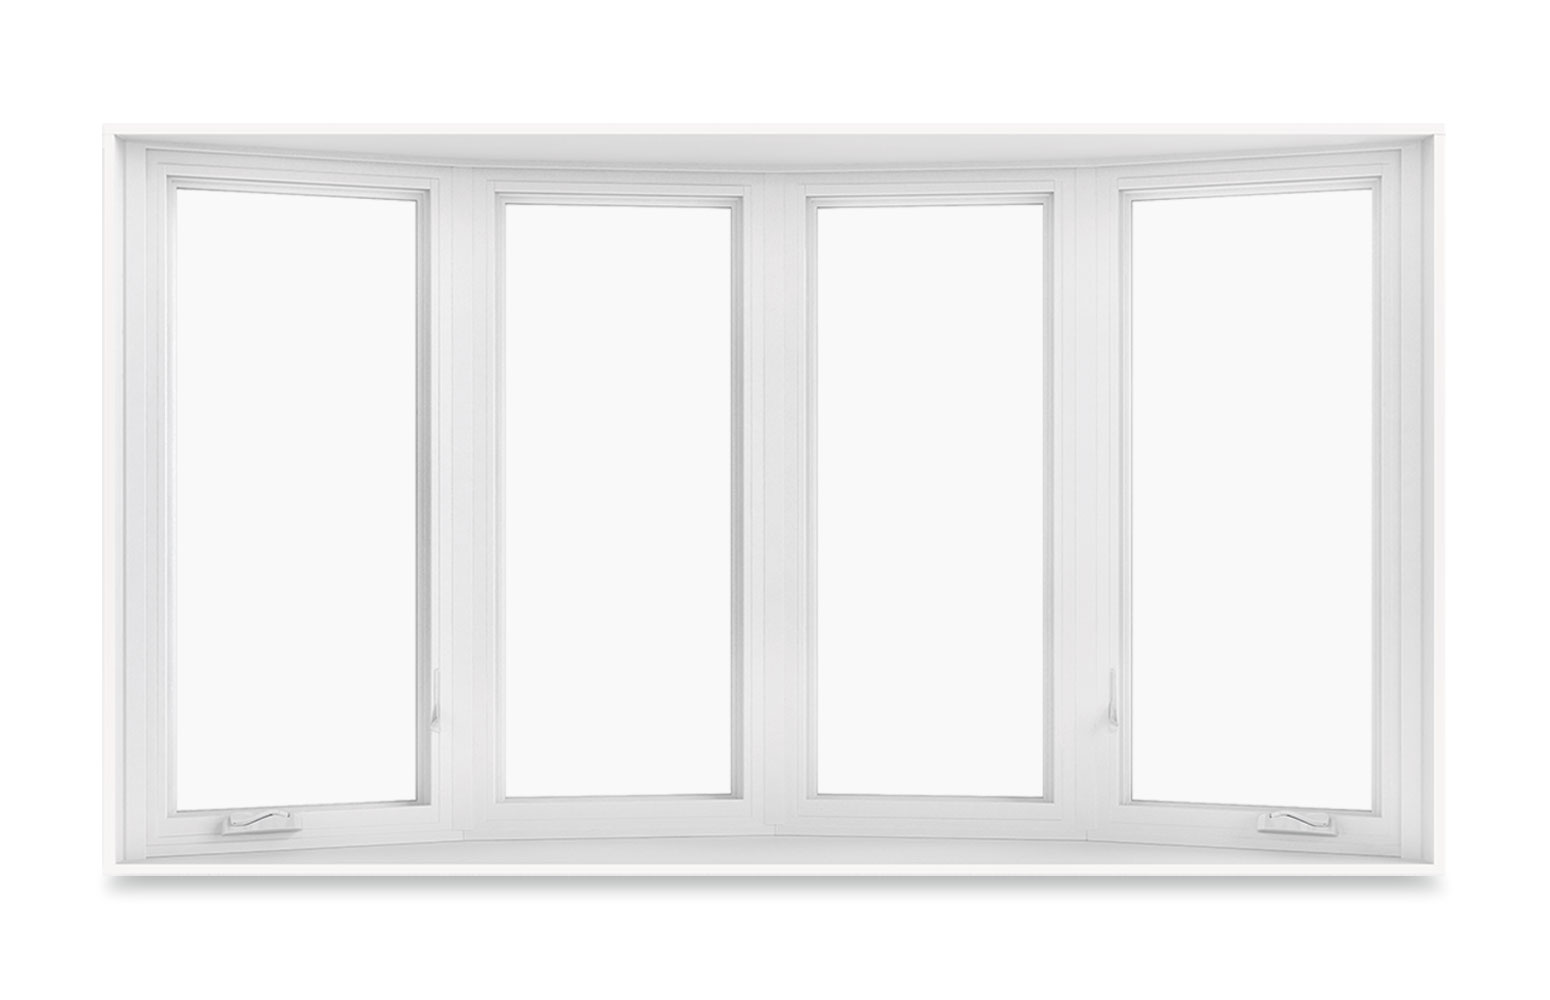 Bow window with 4-wide casements